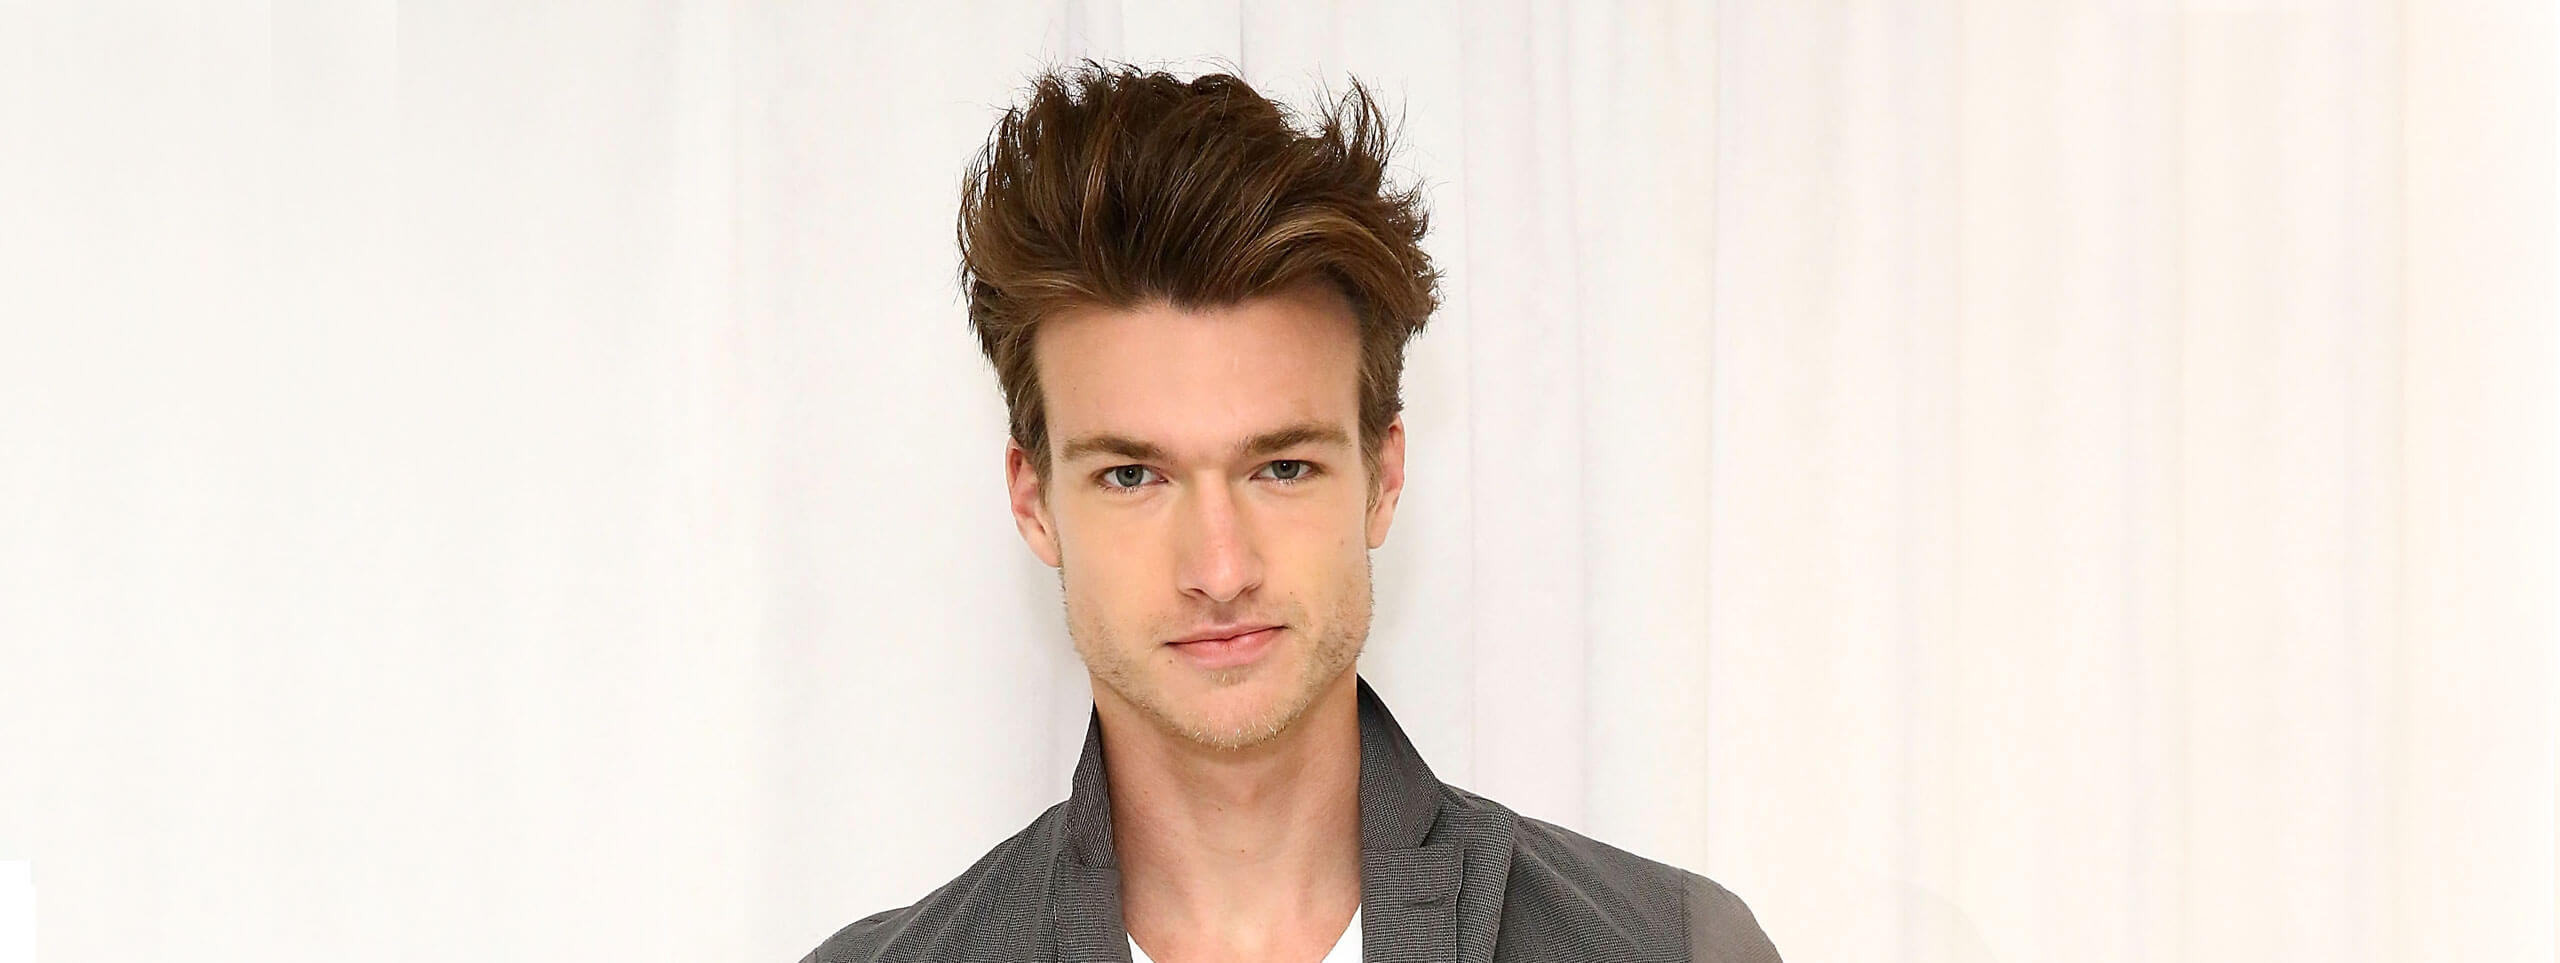 mens-hairstyles-trends